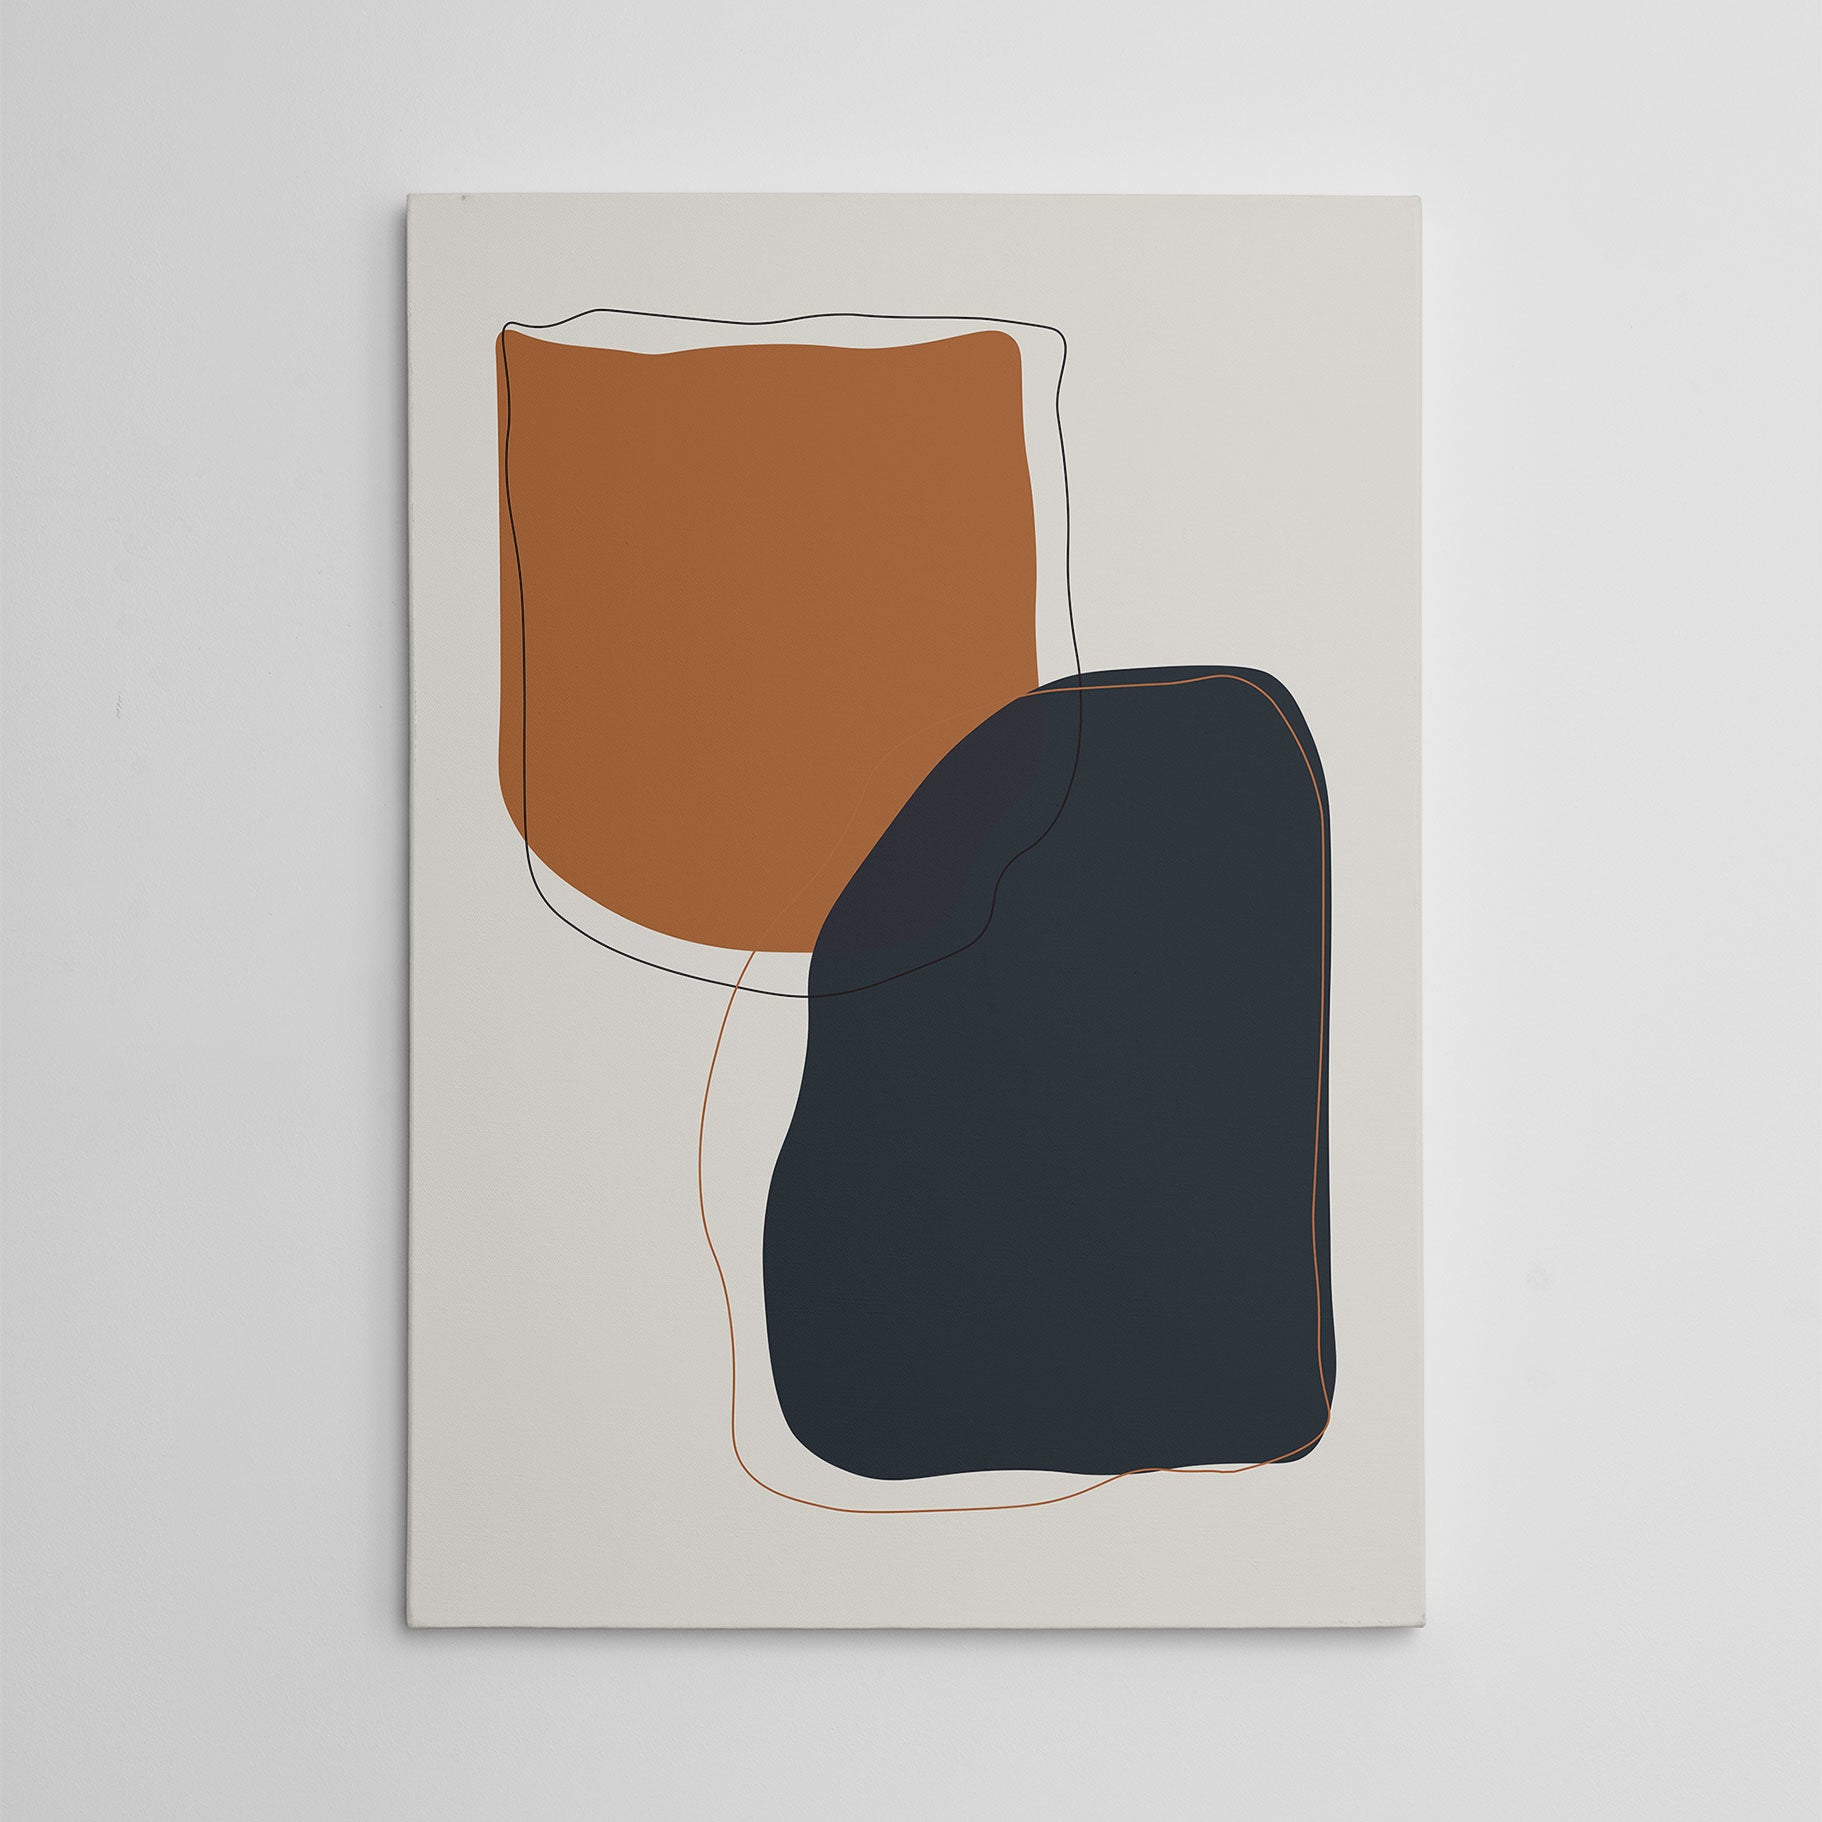 Abstract canvas print with earthy coloured shapes on grey background